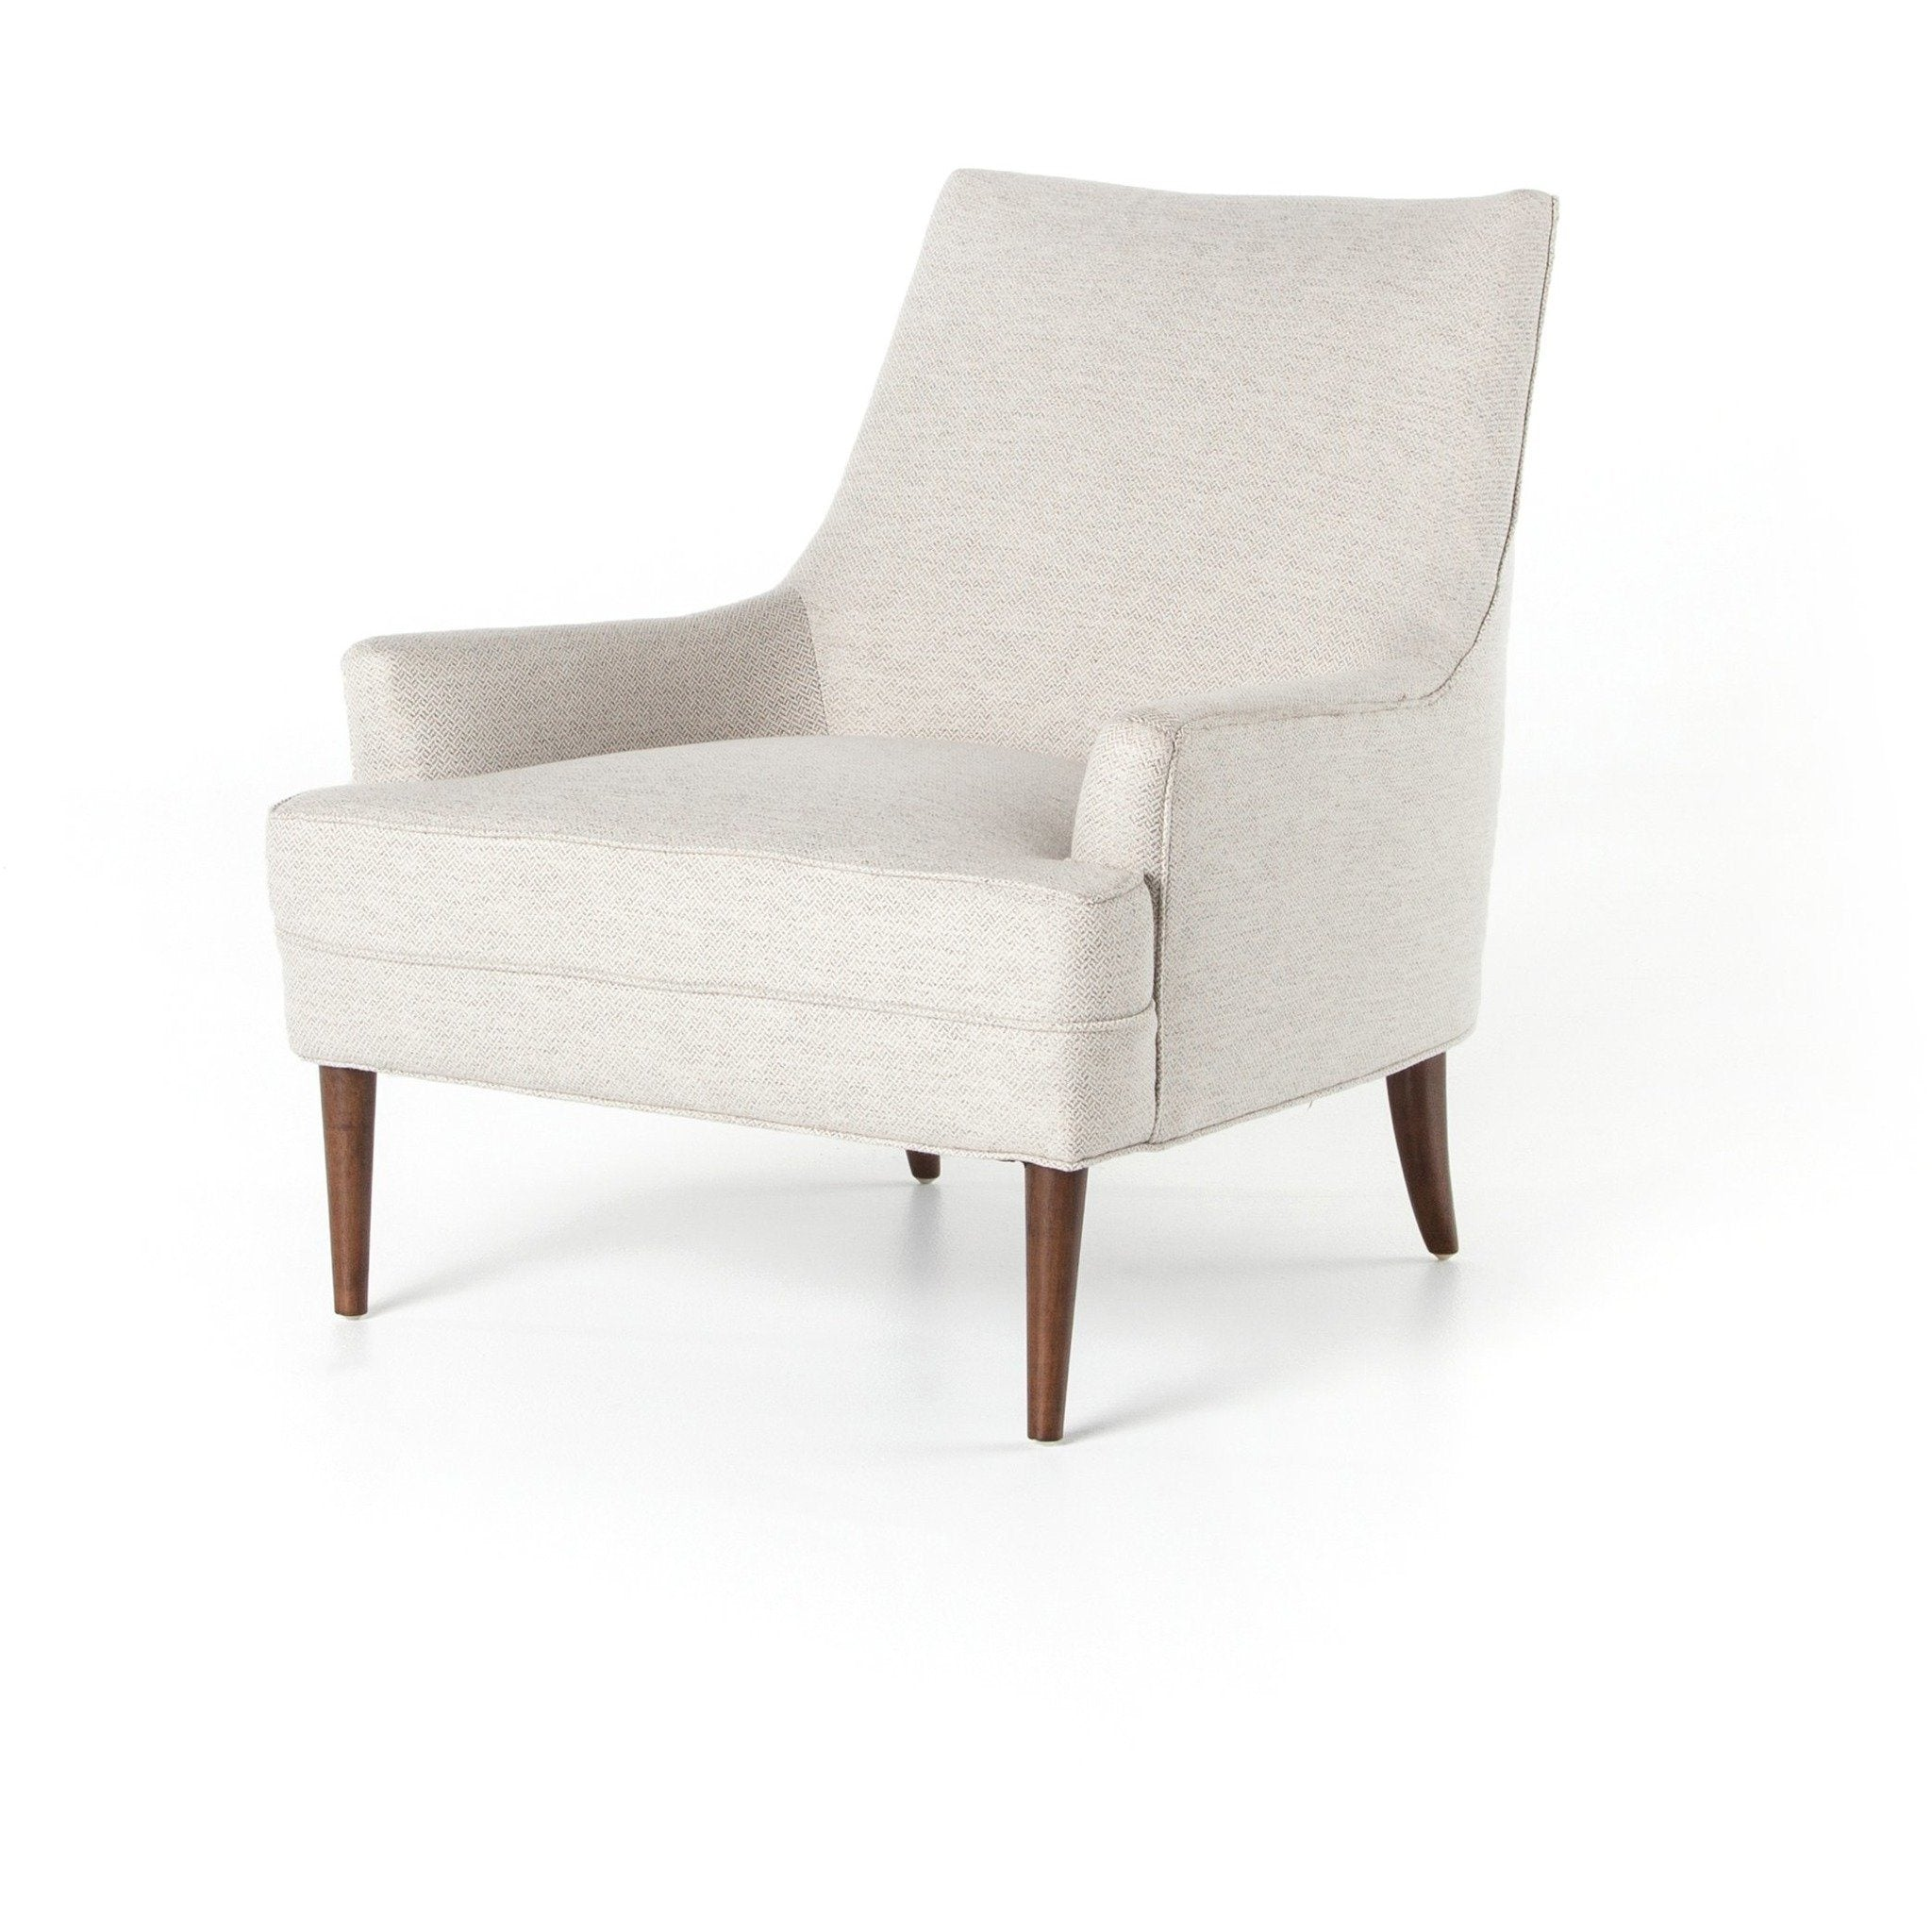 Lovecup Banya Chair - LOVECUP